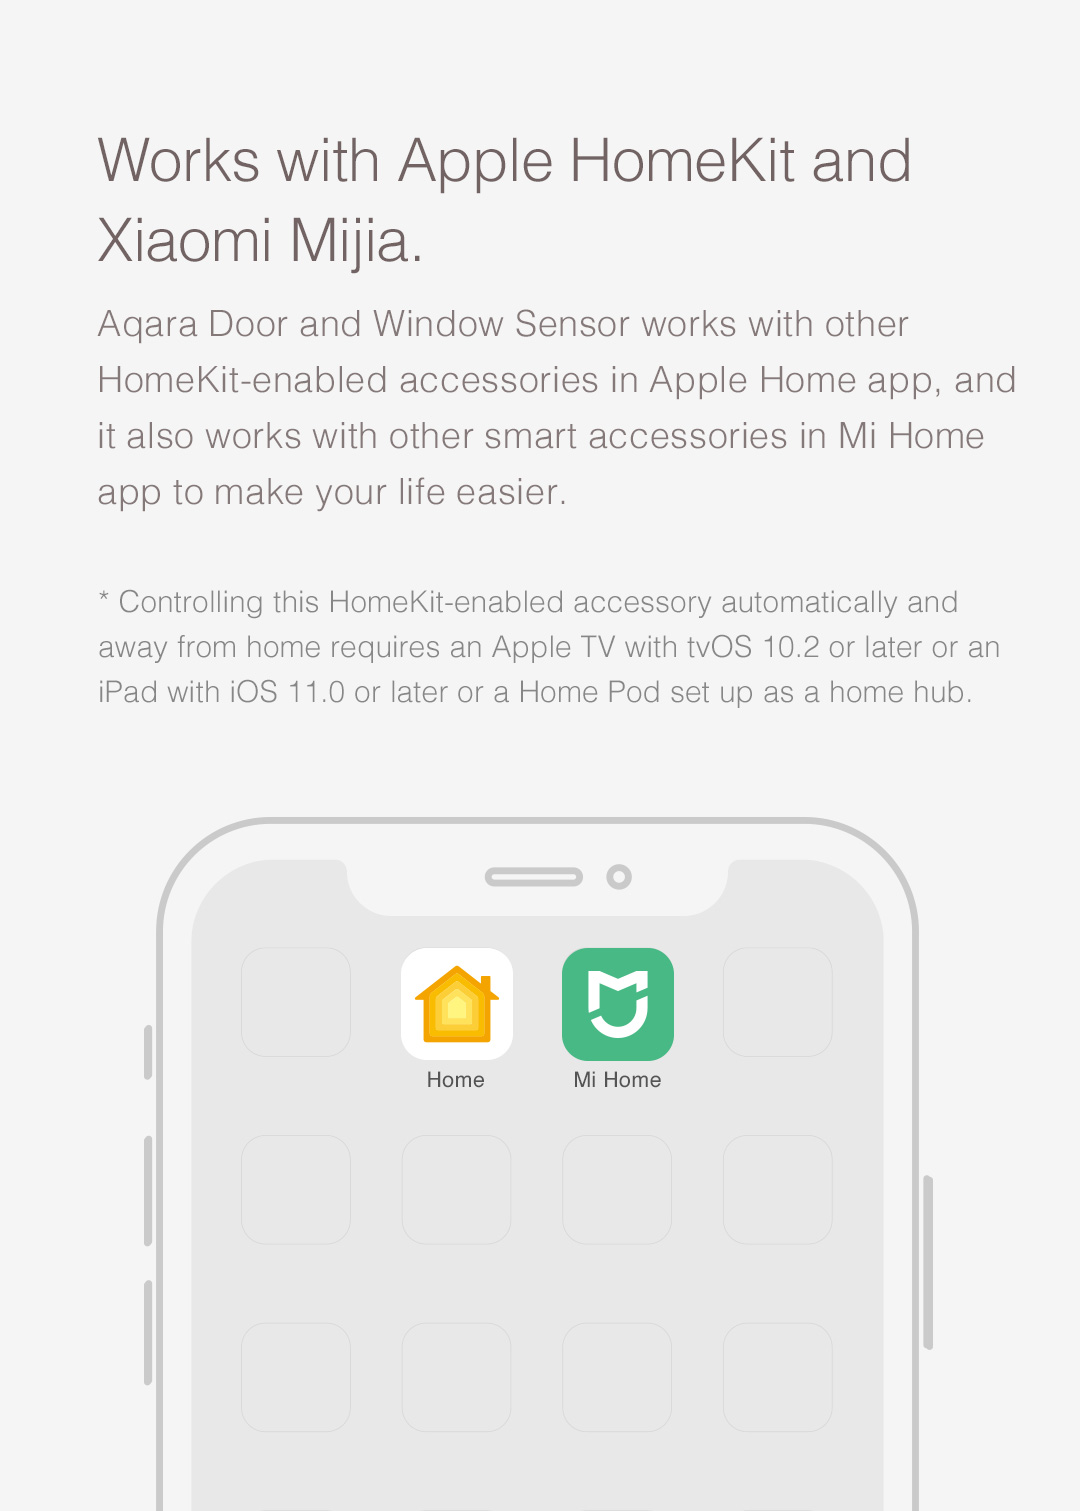 Aqara smart door window sensor works with Apple HomeKit and Xiaomi Mijia